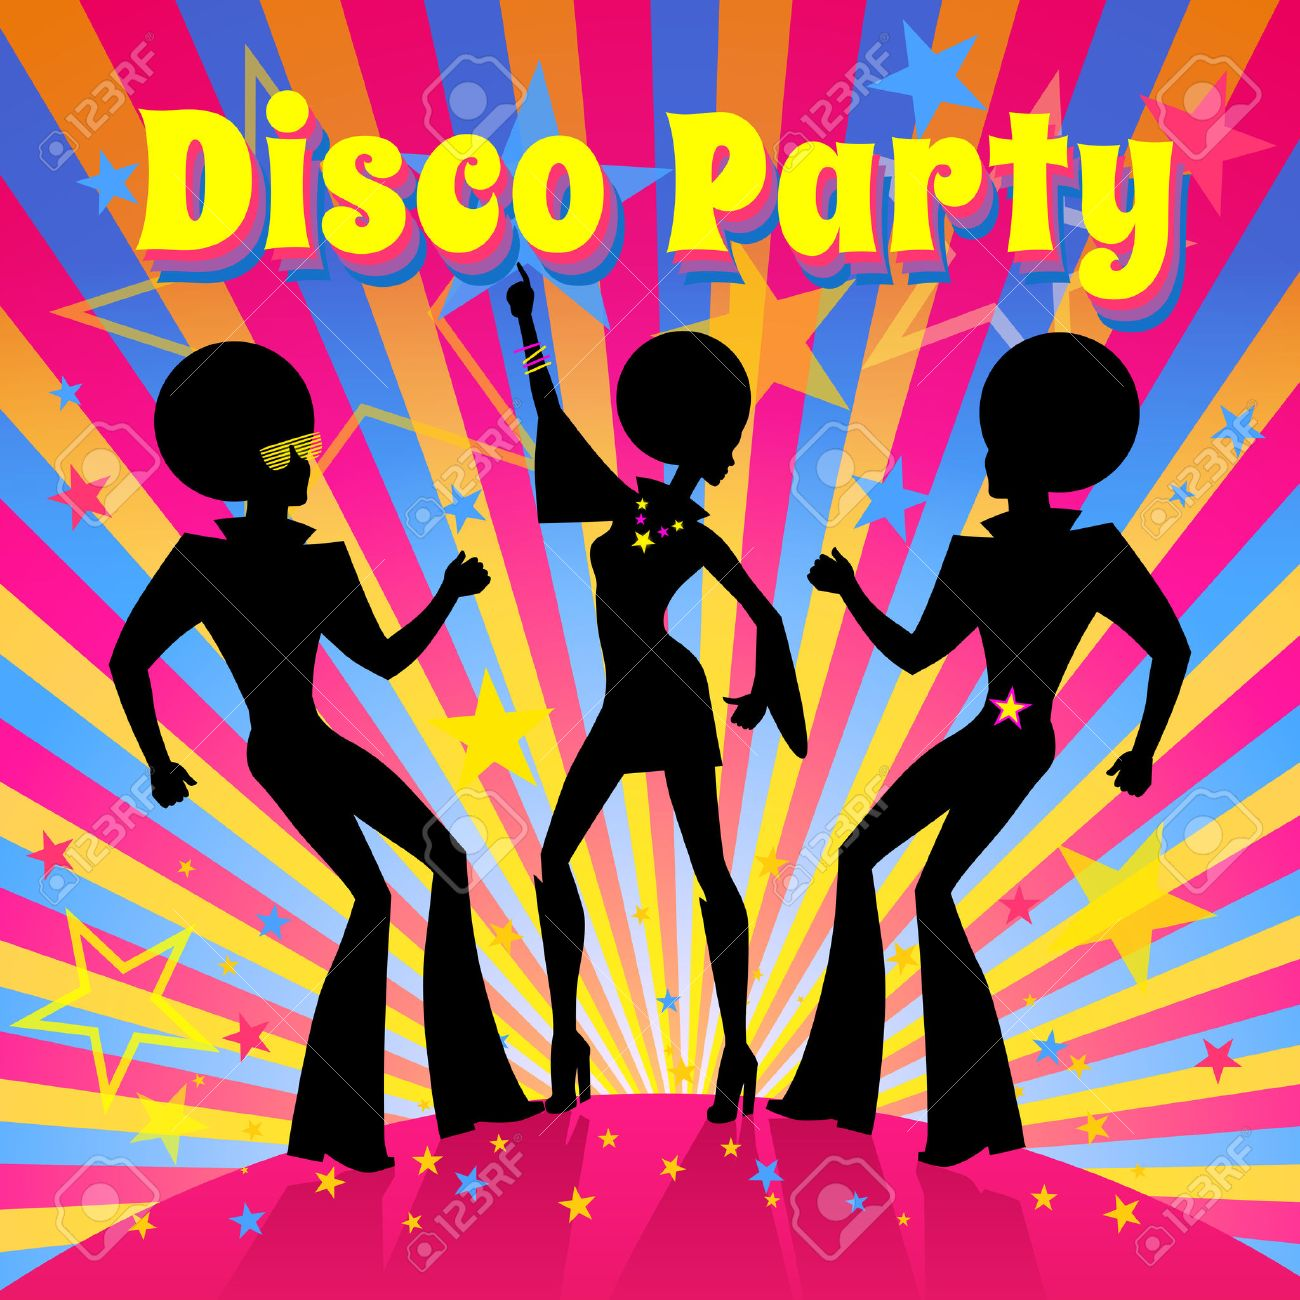 Disco Party Invitation Template With Silhouette Of A Dancing ...